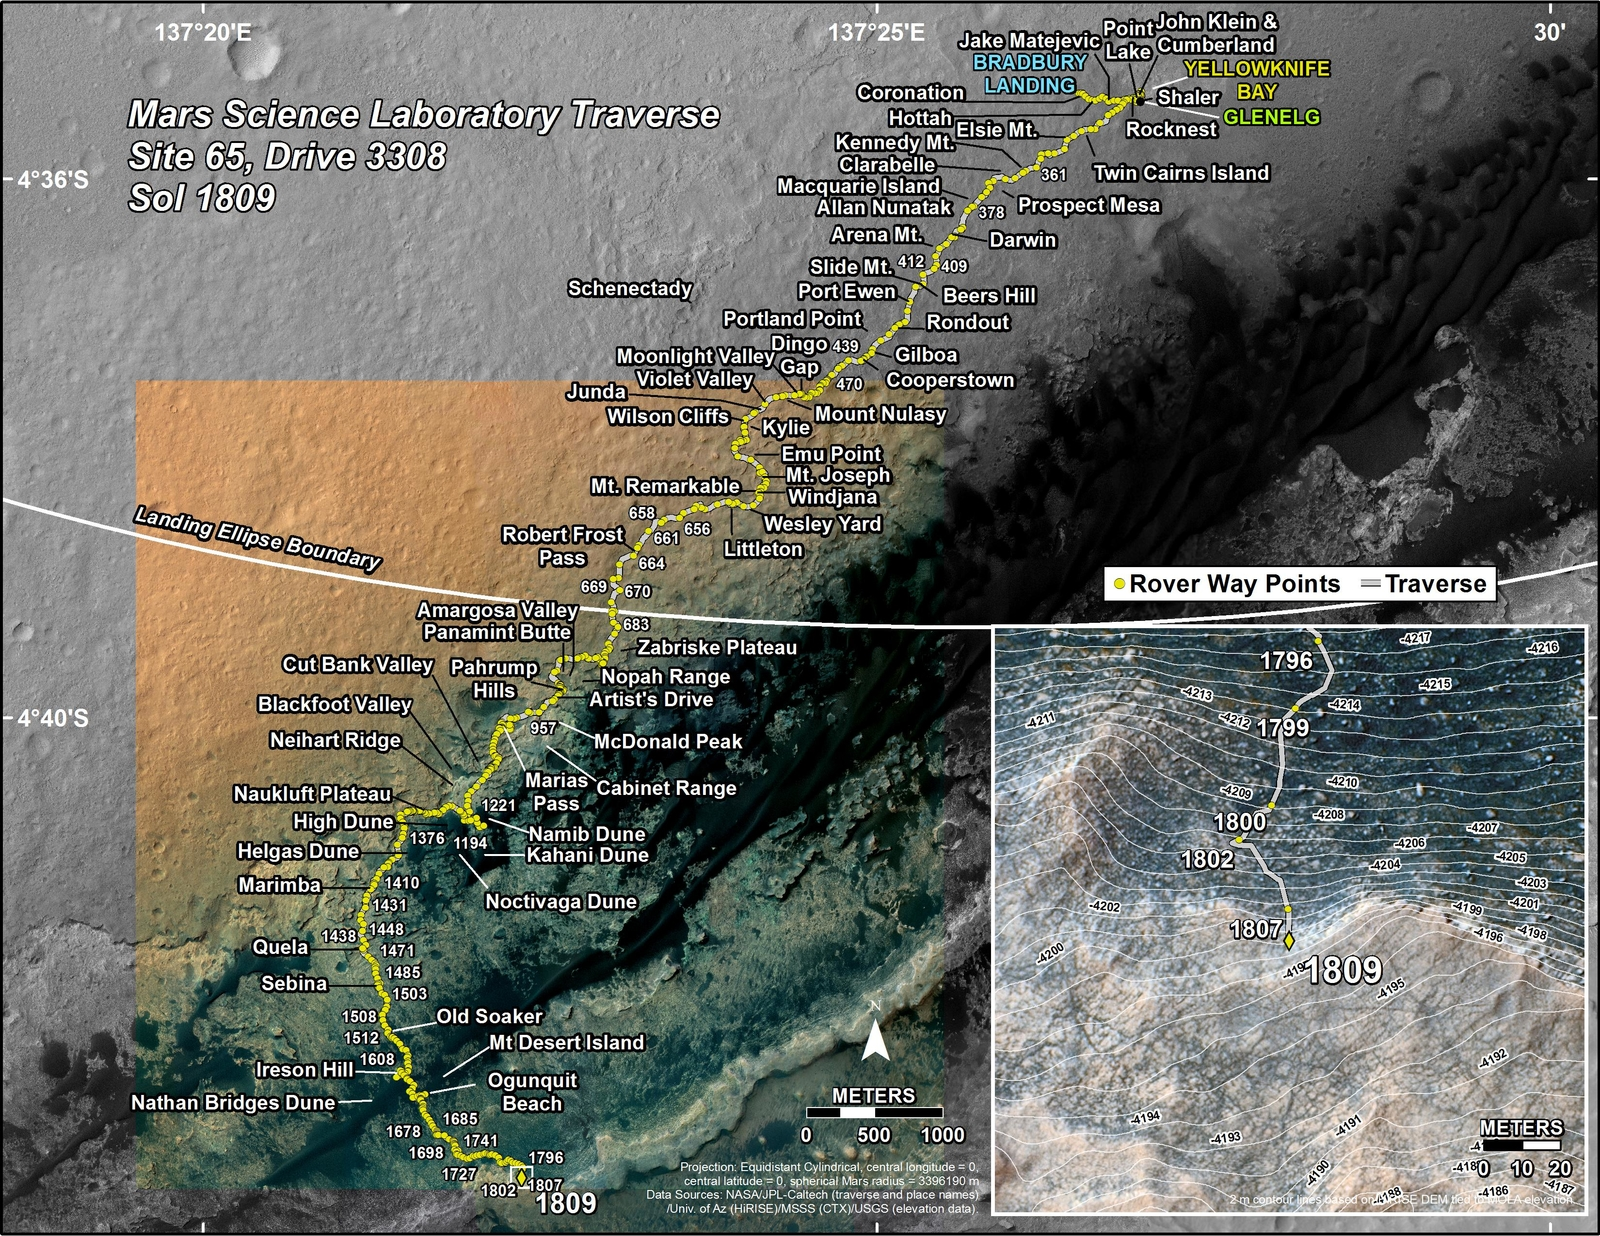 This map shows the route driven by NASA's Mars rover Curiosity through the 1809 Martian day, or sol, of the rover's mission on Mars (September 08, 2017).